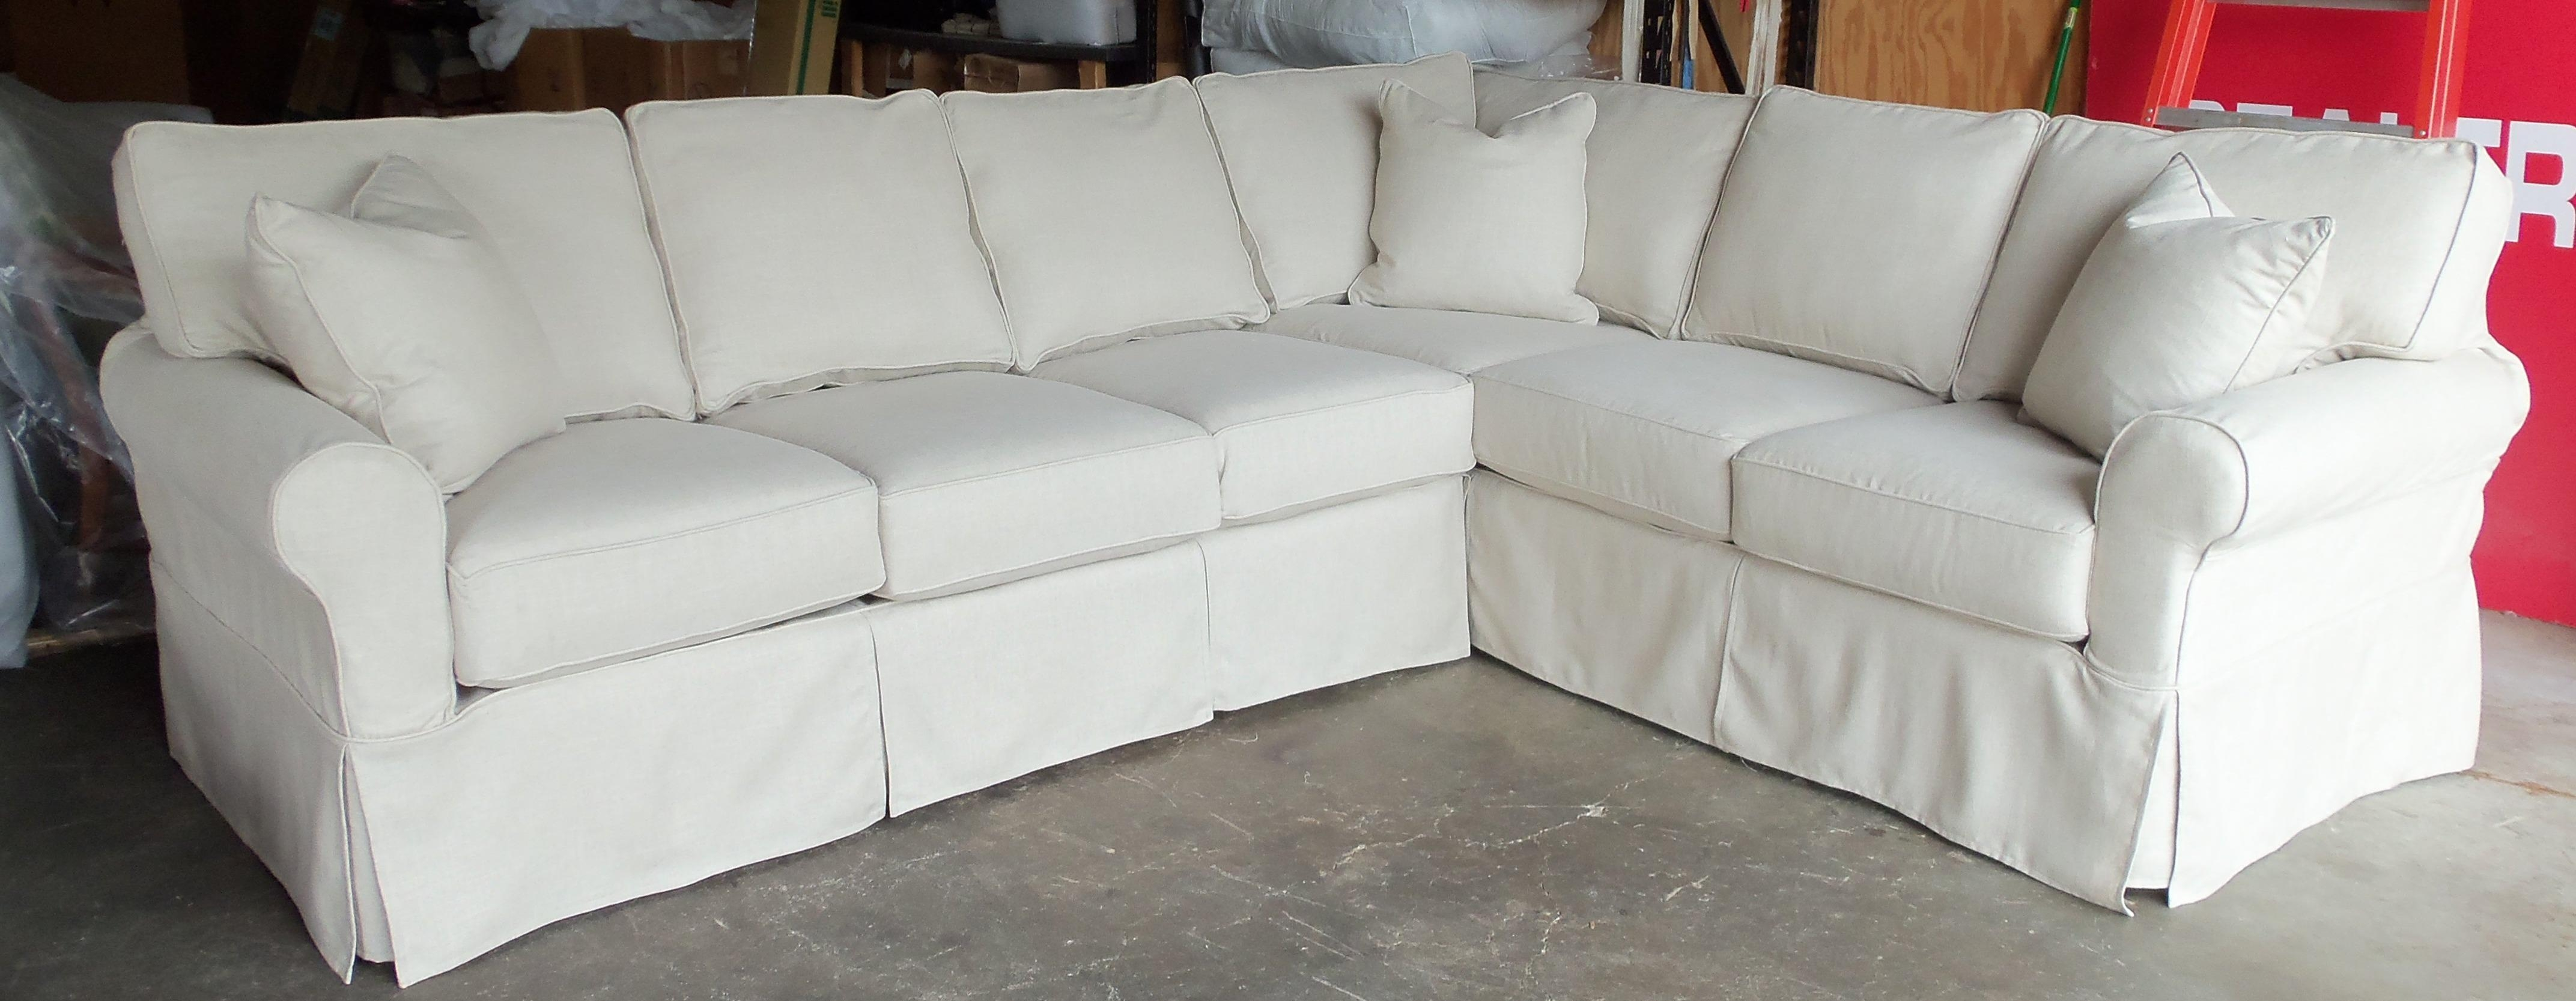 Furniture: Cheap Sofa Covers | Cheap Couch Covers | Replacement Intended For Chaise Sofa Covers (View 13 of 20)